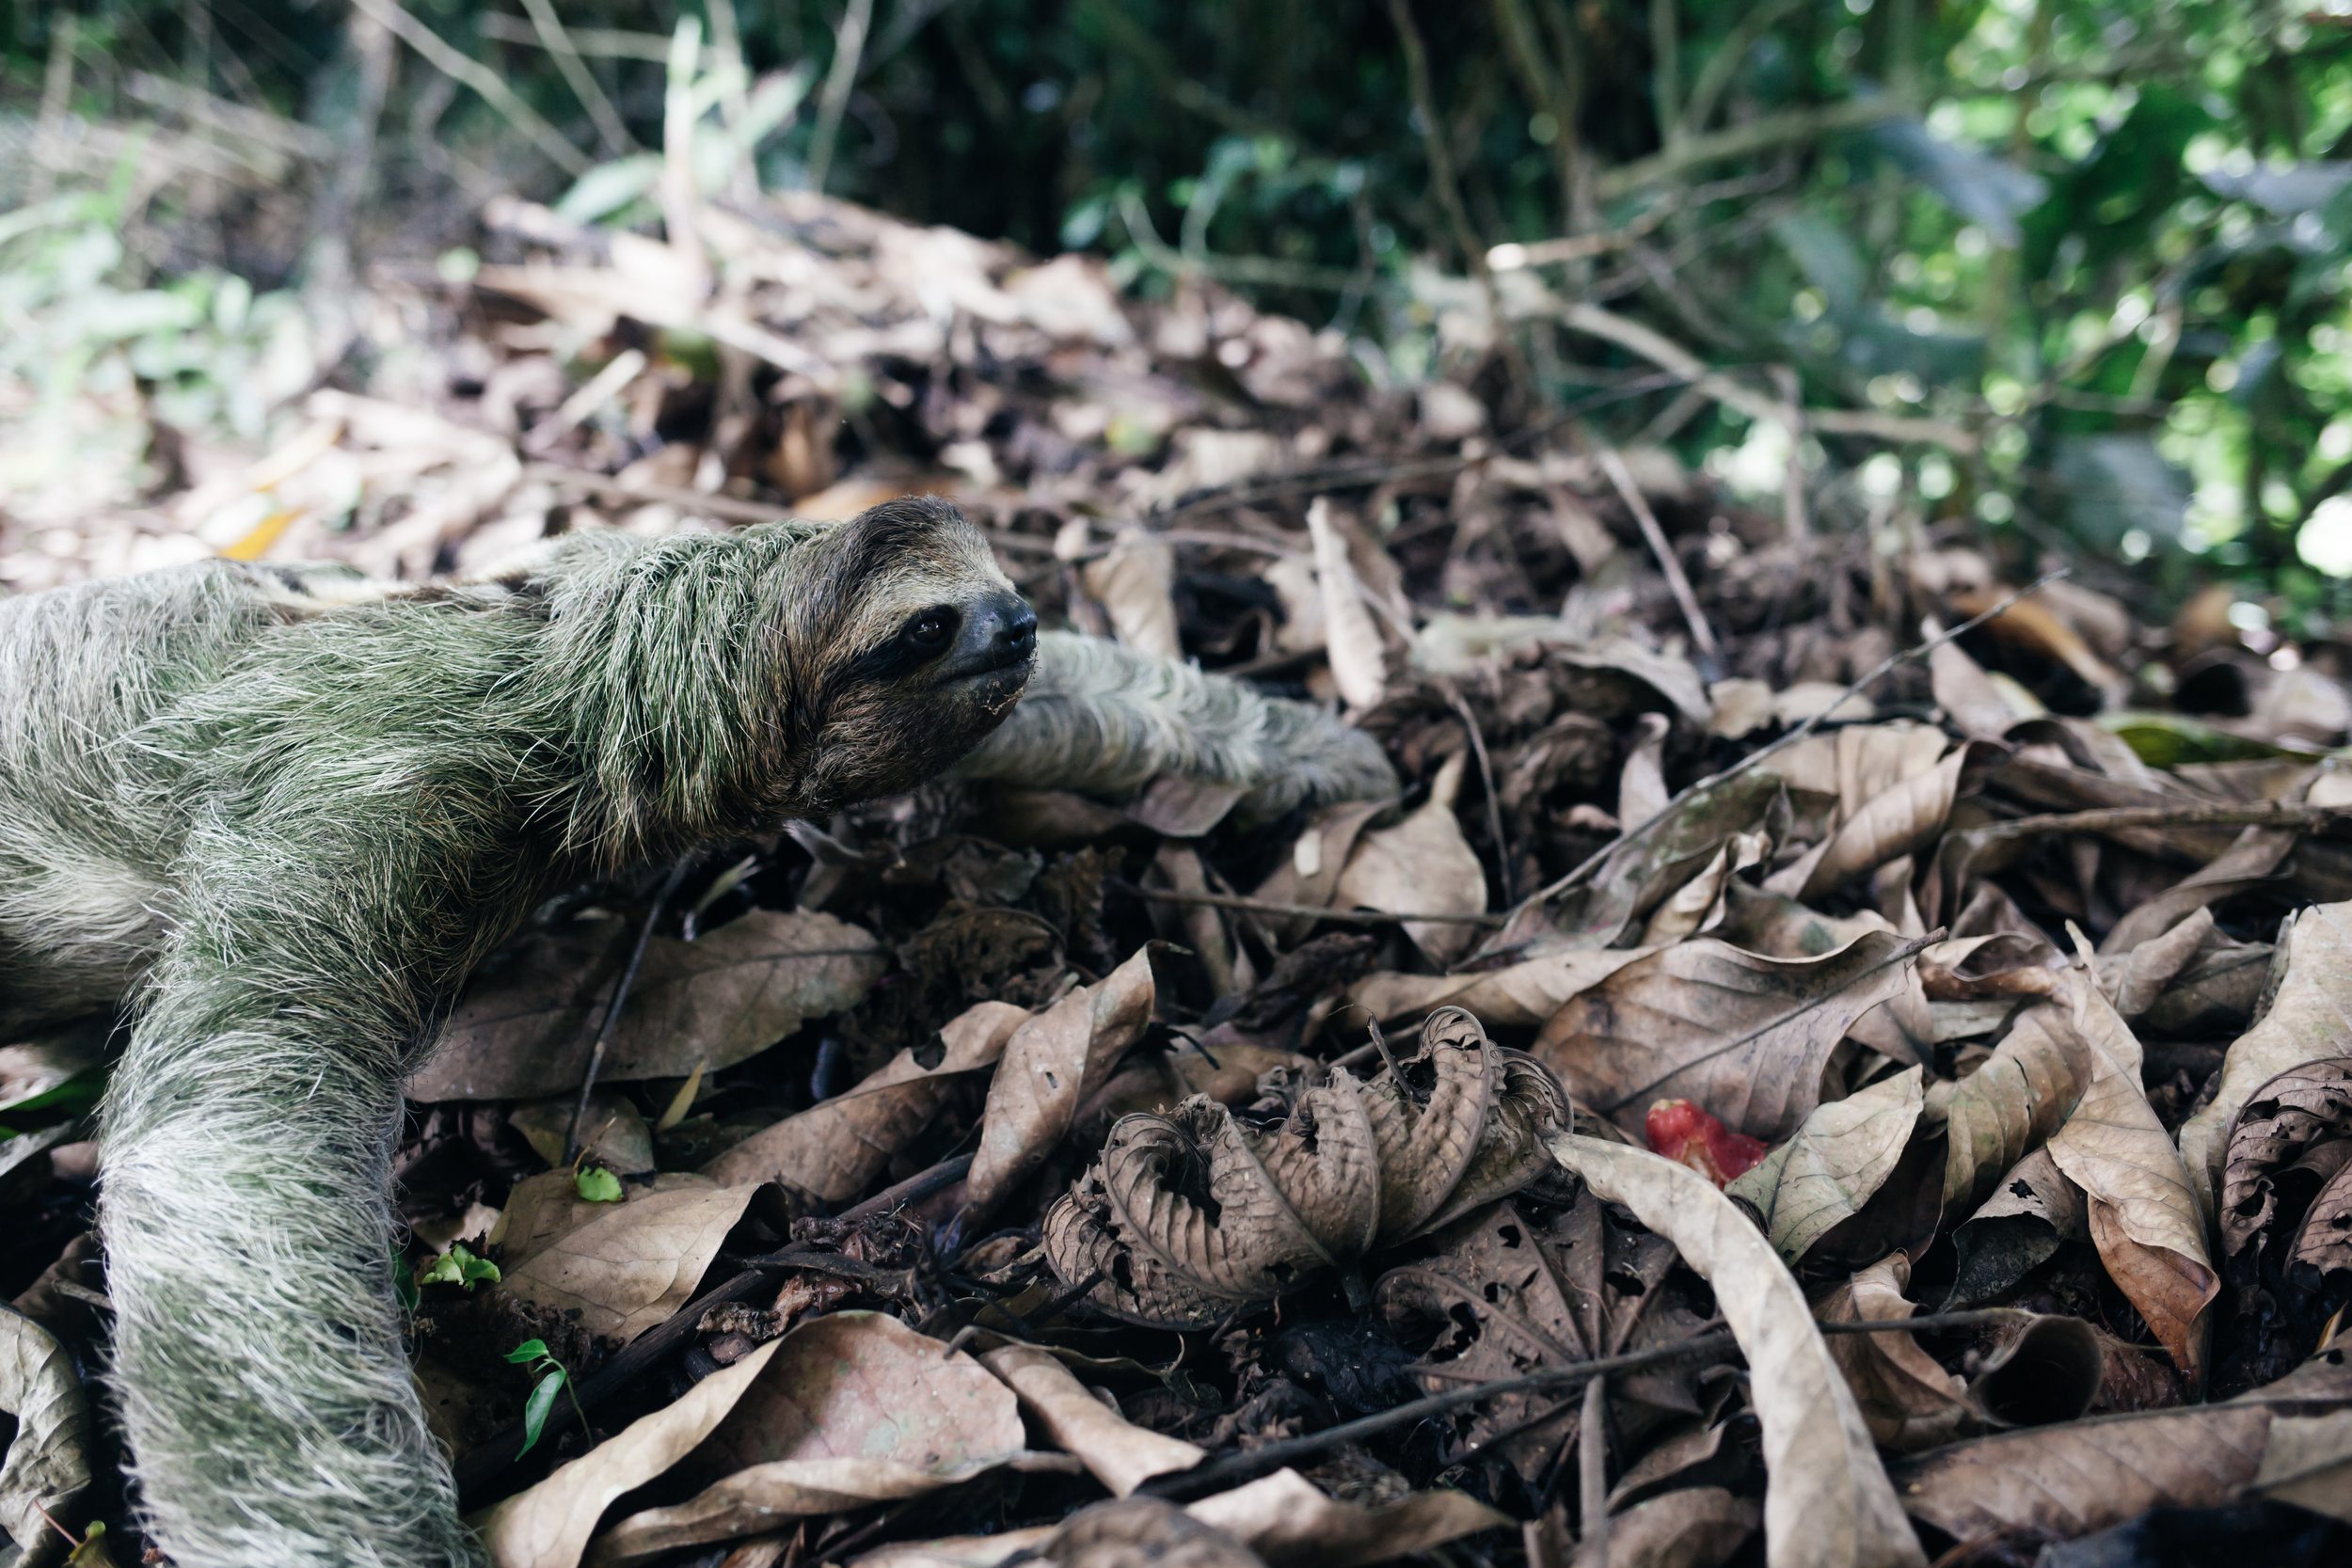 costarica_airbnb_sloth (34 of 49).jpg